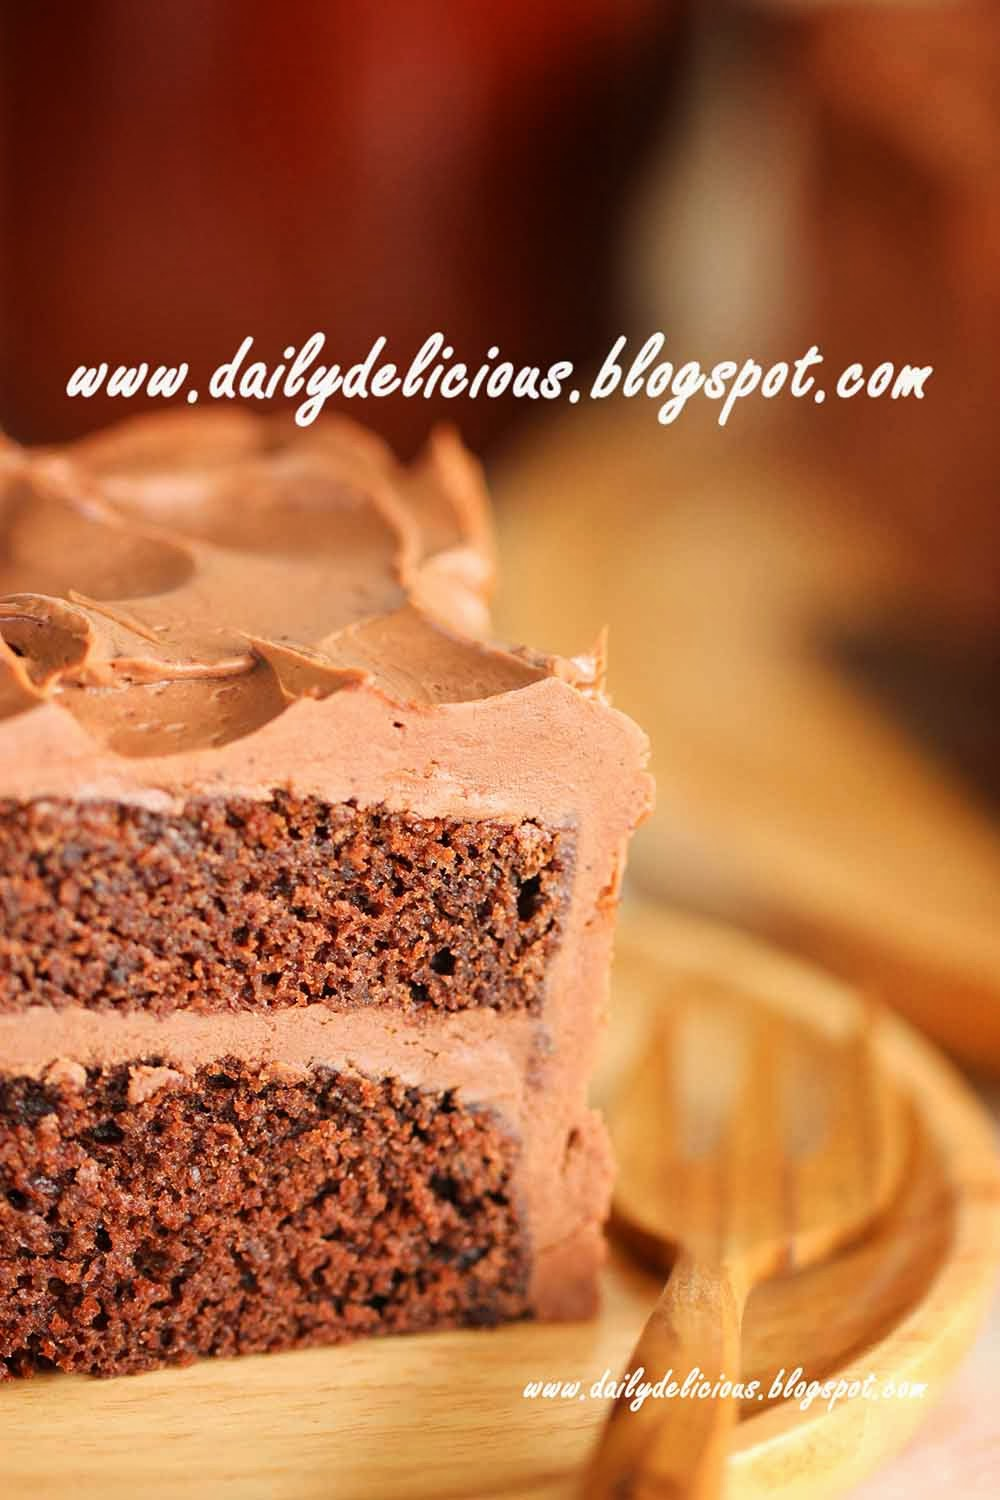 Chocolate Cake Without Cocoa Powder Uk